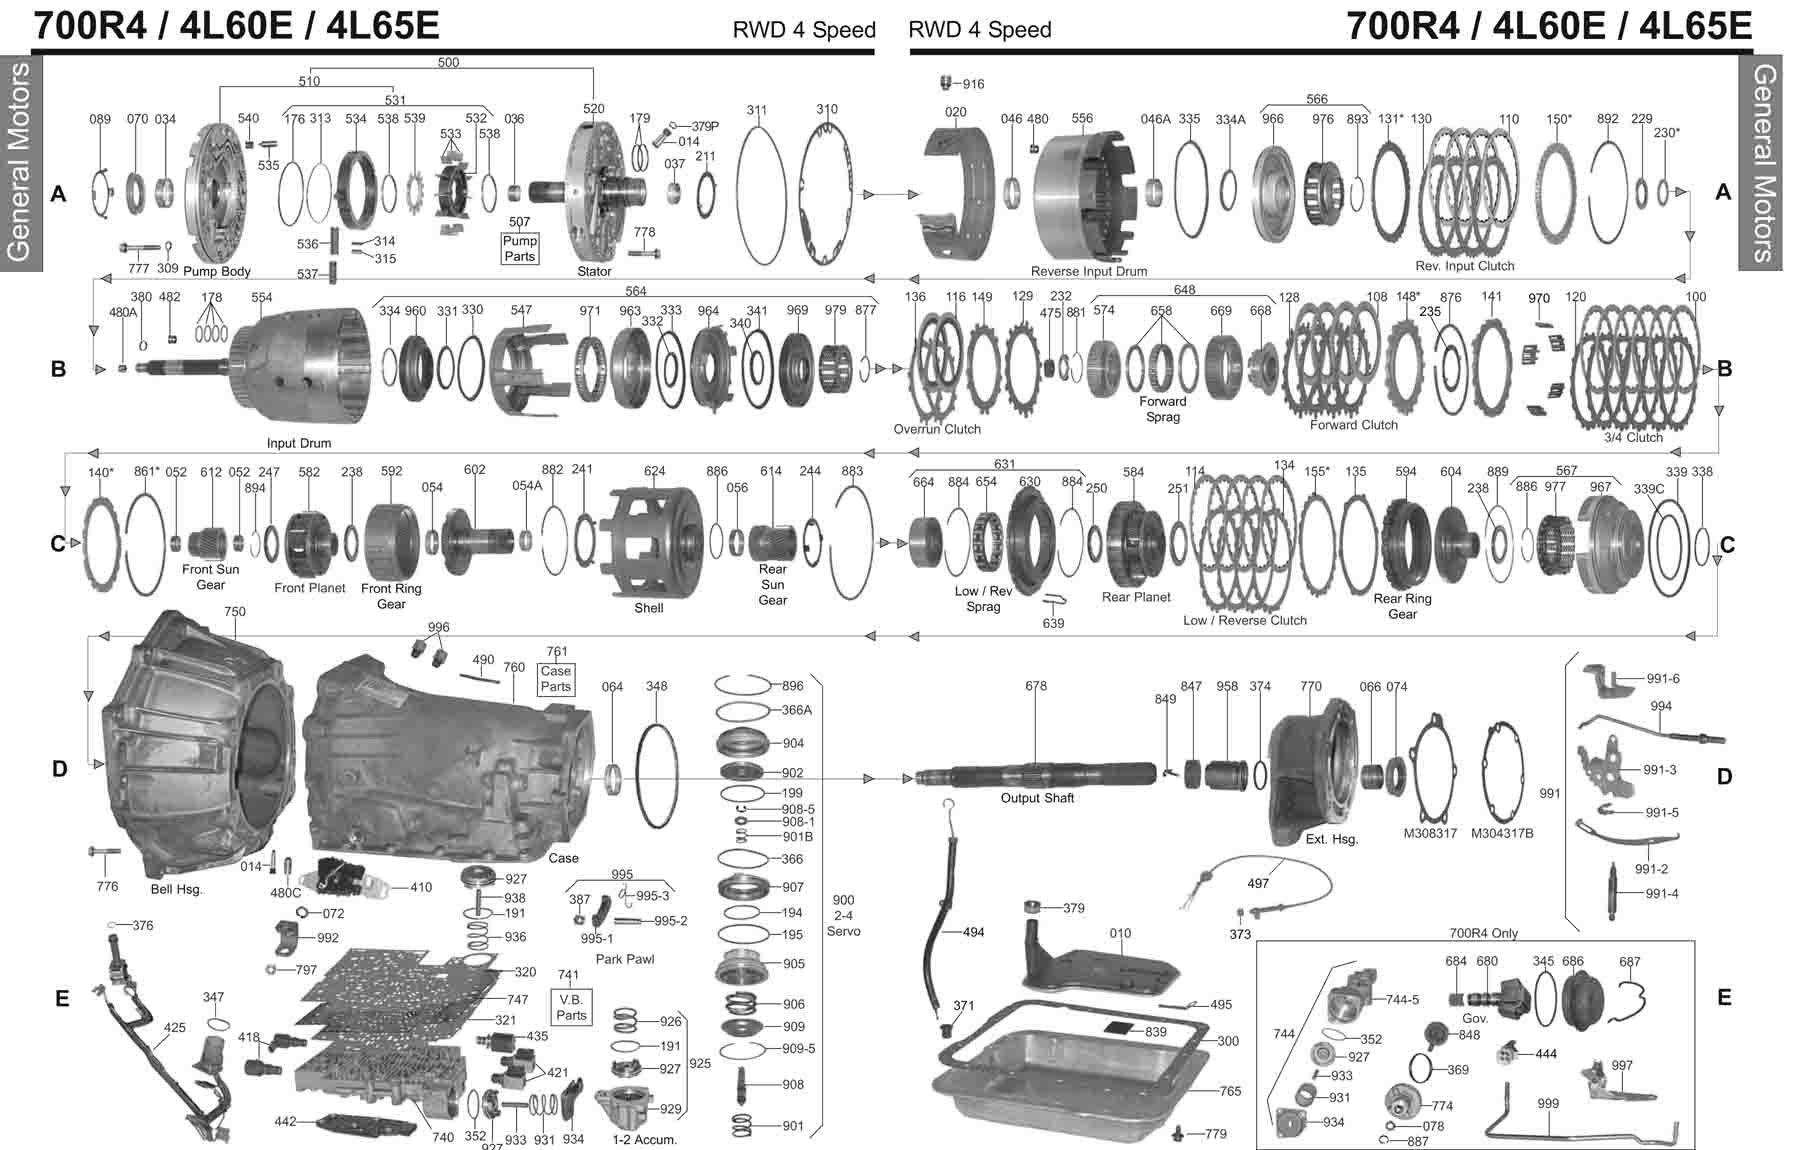 hight resolution of 700r4 exploded diagram simple wiring schema shimano reel exploded diagram 4l60e transmission exploded view diagram simple